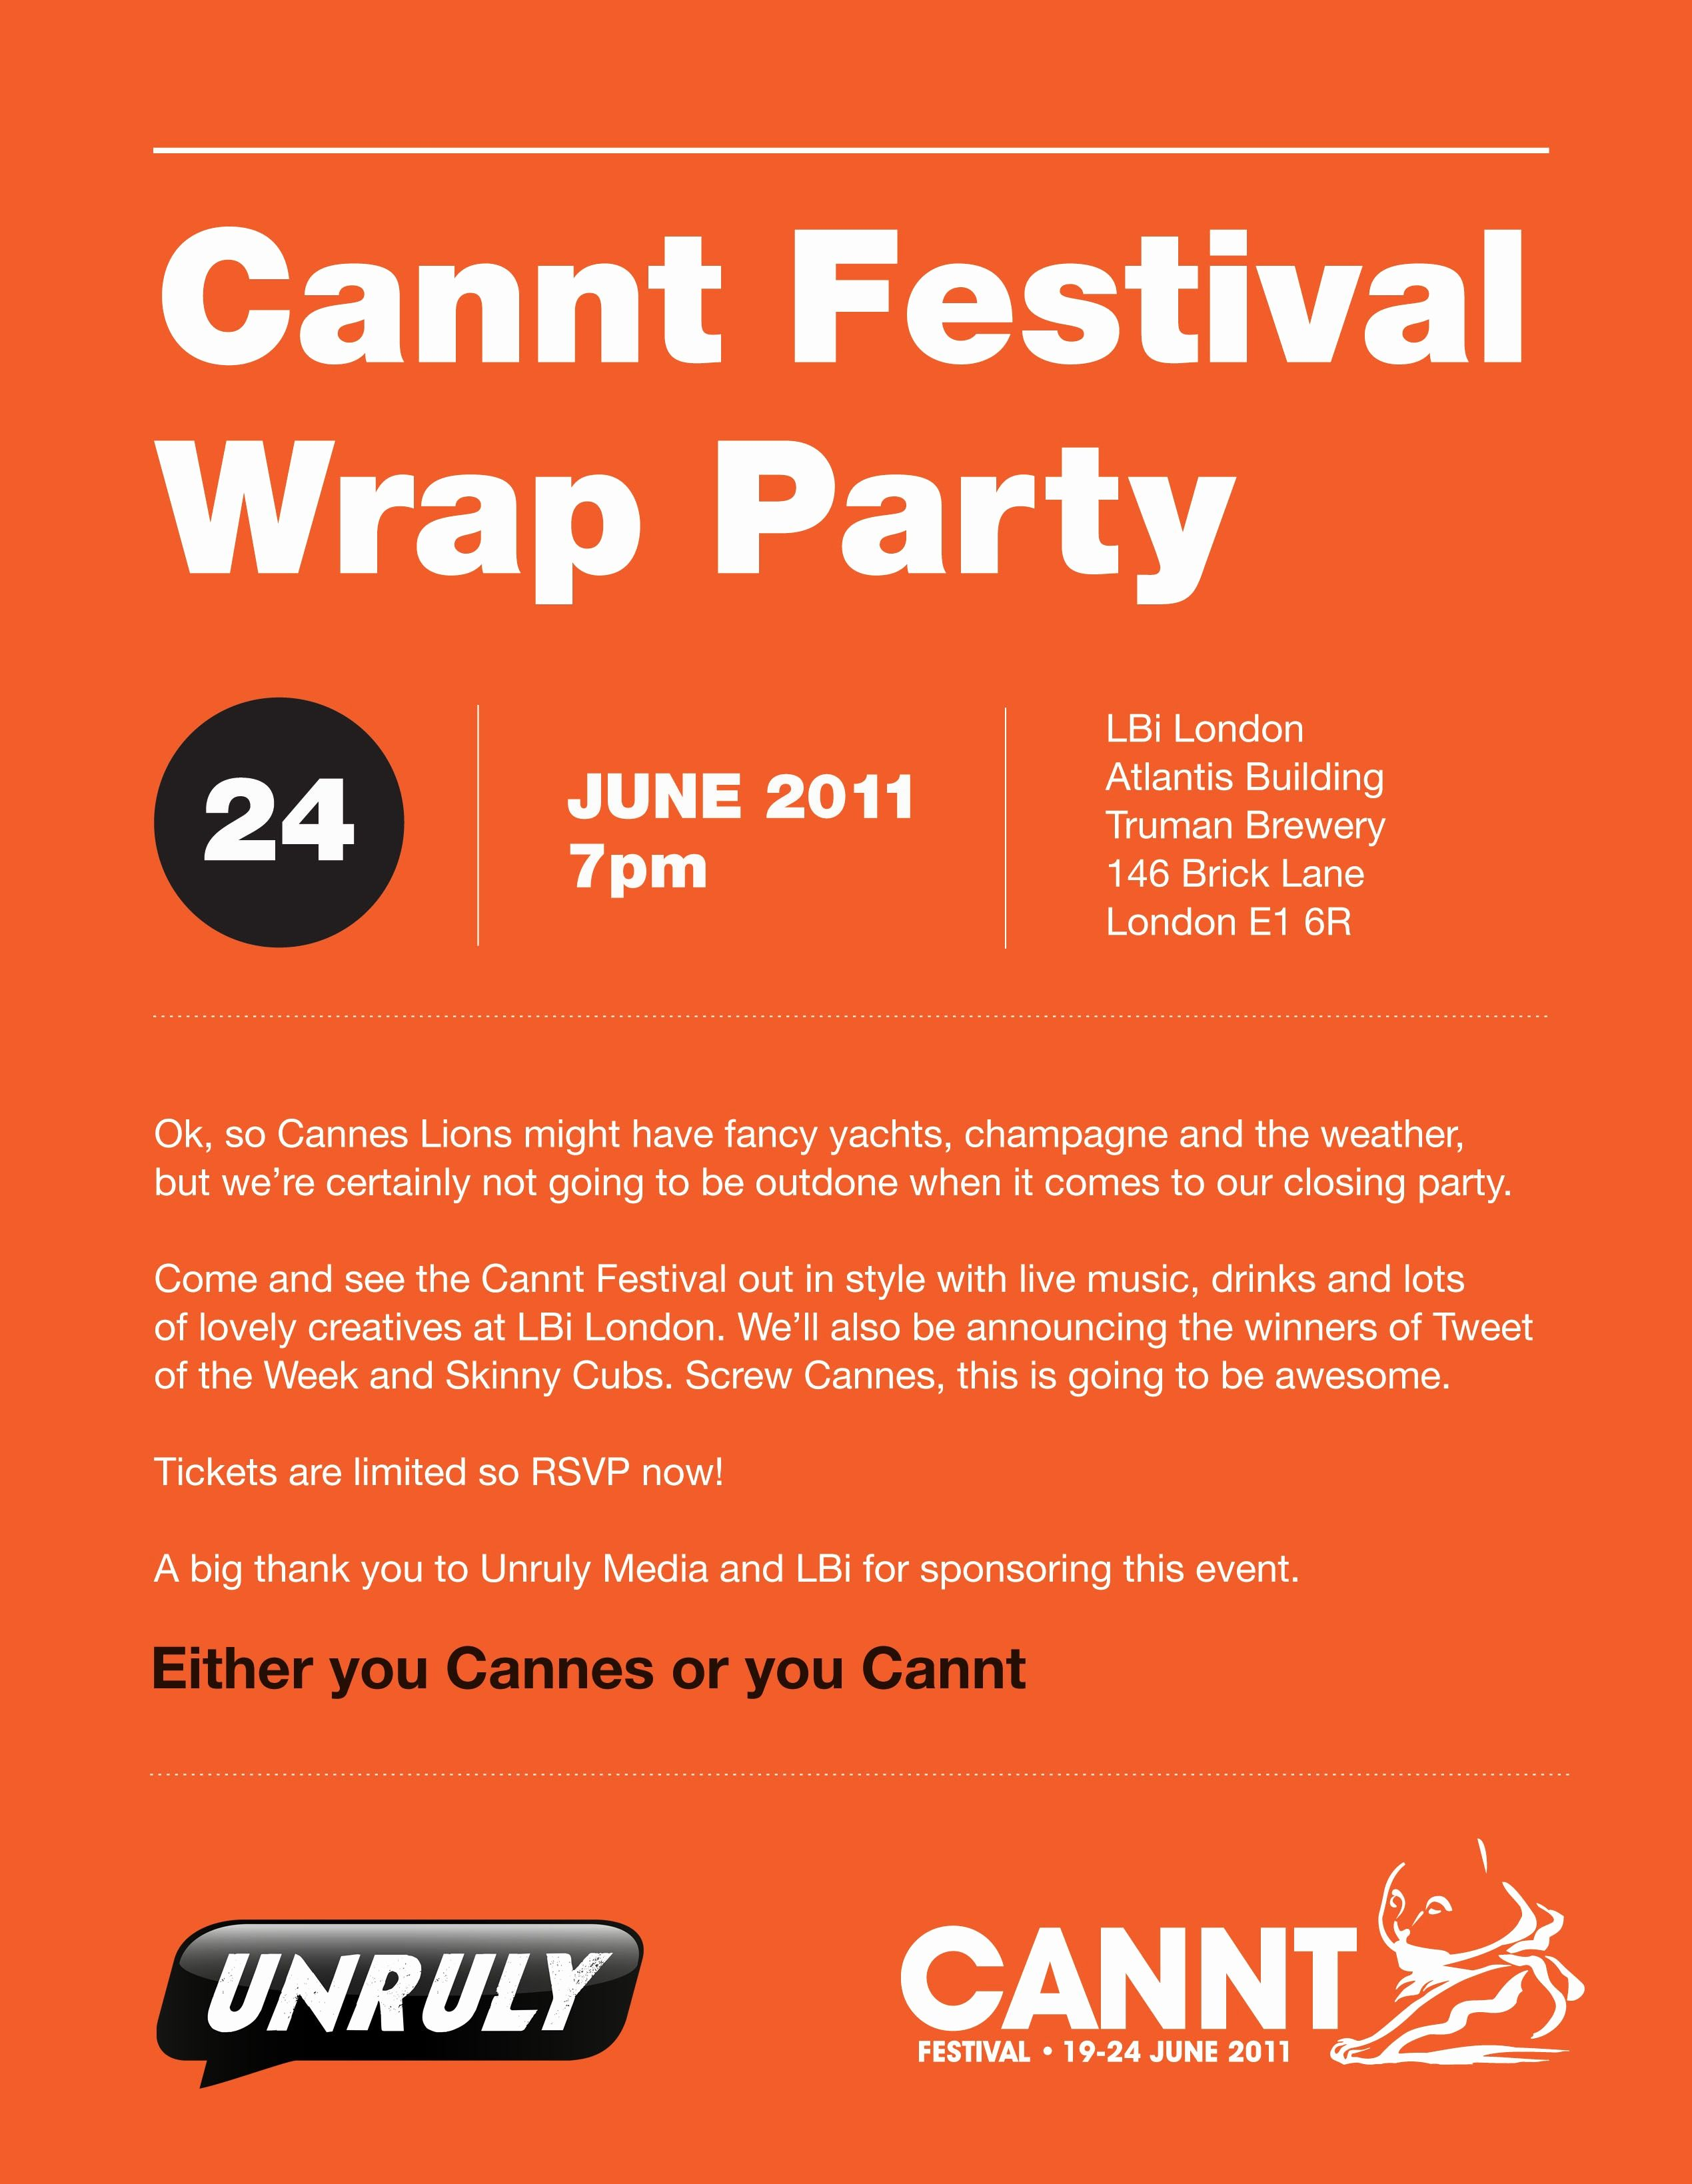 It Works Wrap Party Invitation Luxury Cannt Festival Wrap Party